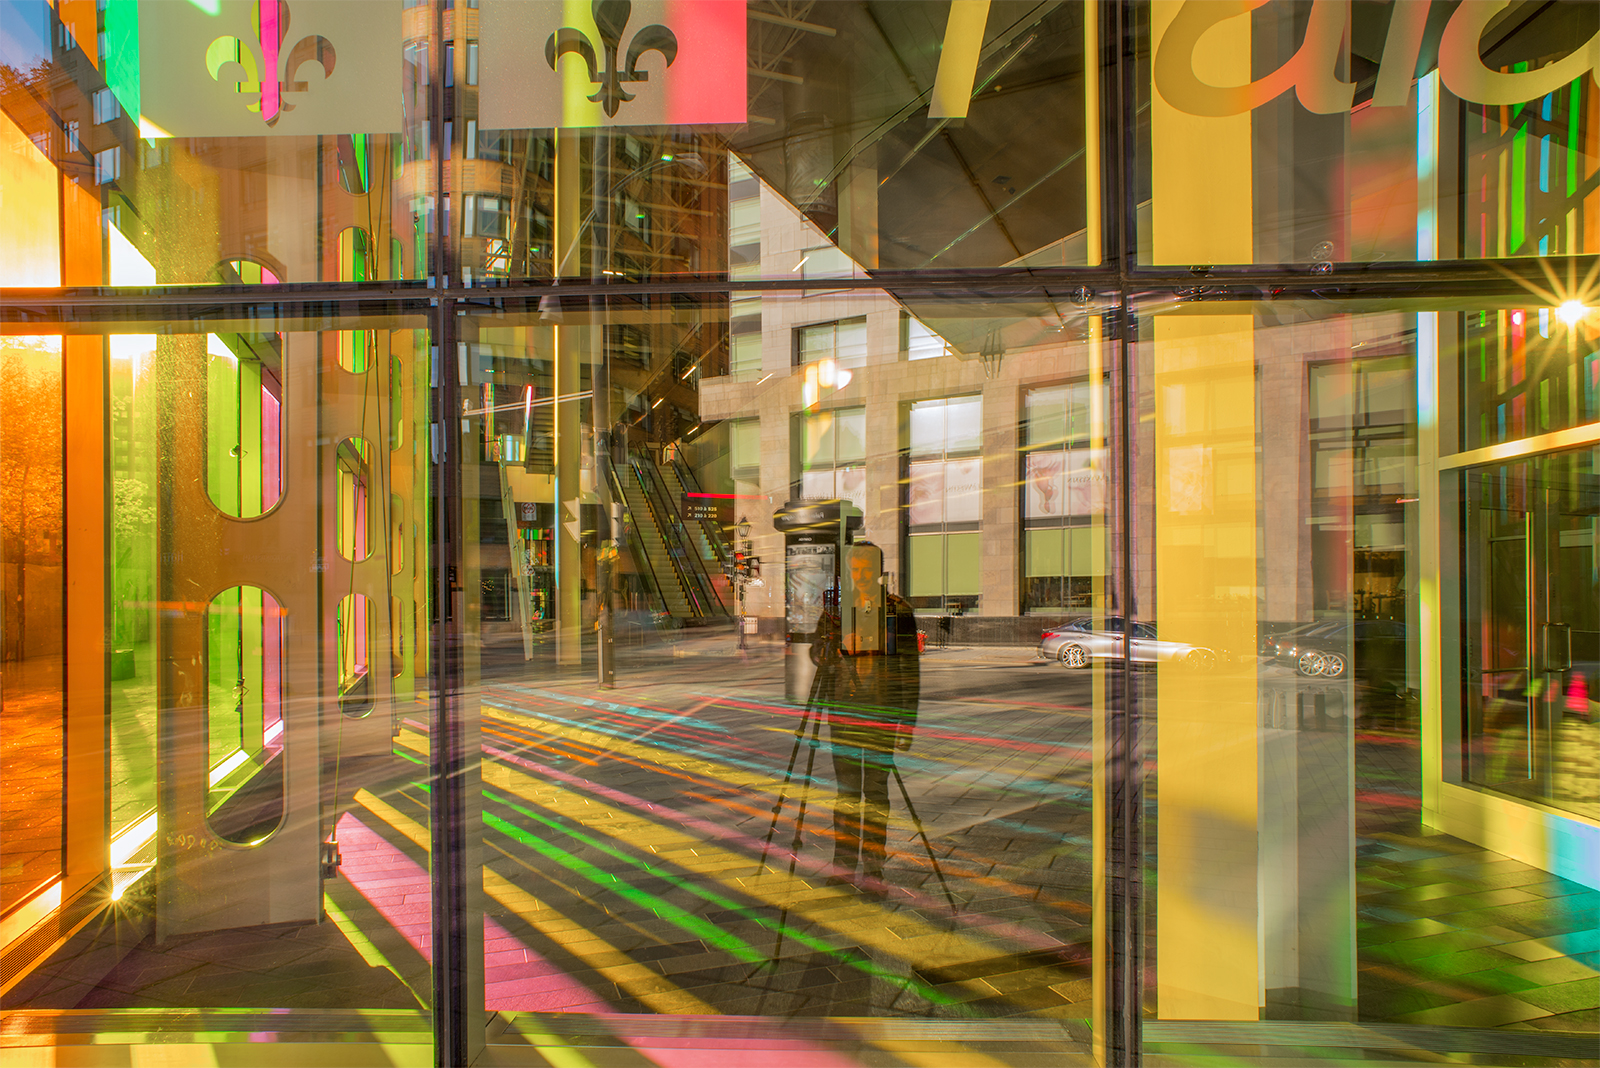 palais_congres_montreal_multicolor_selfie_sunset_reflestion